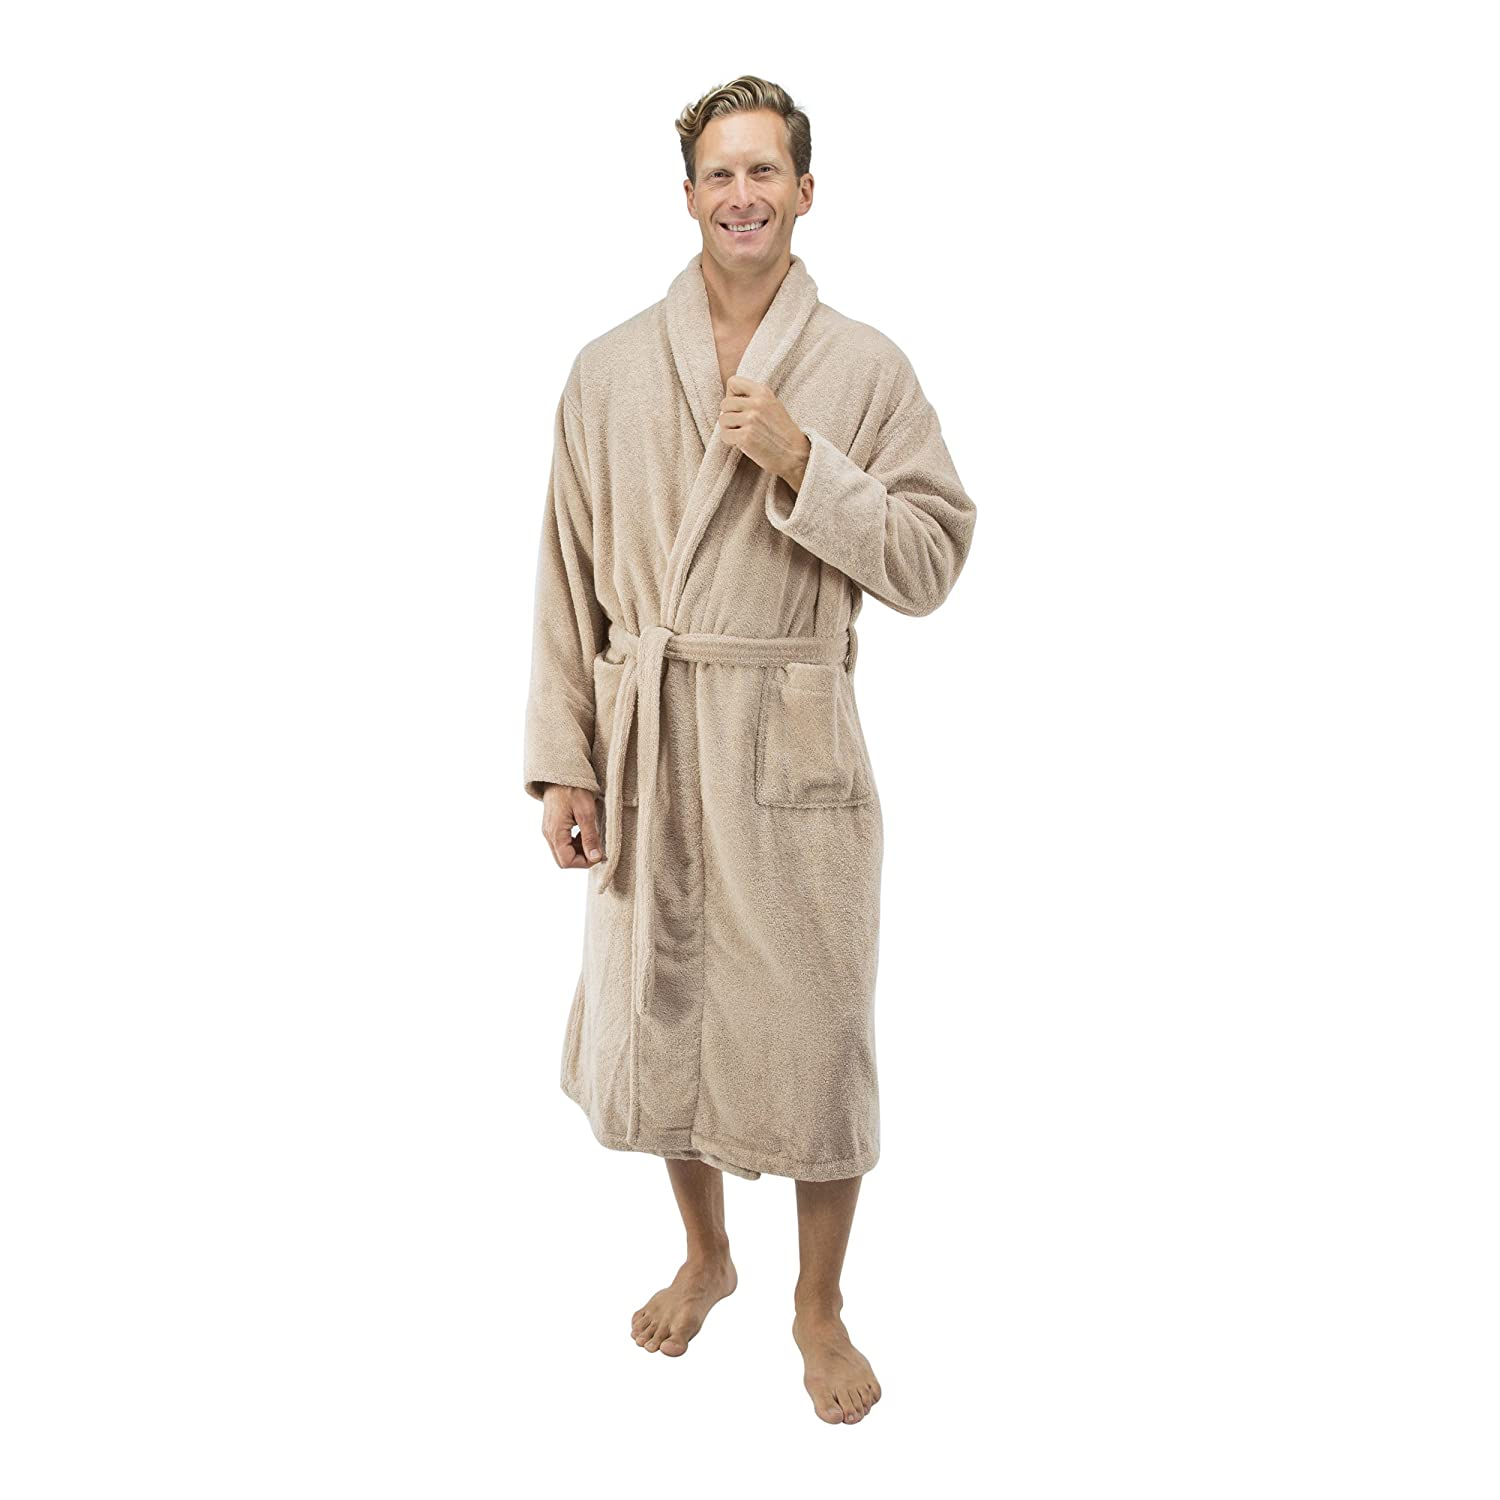 8183028afb Comfy Robes Men s 16oz Turkish Terry Bathrobe at Amazon Men s Clothing  store